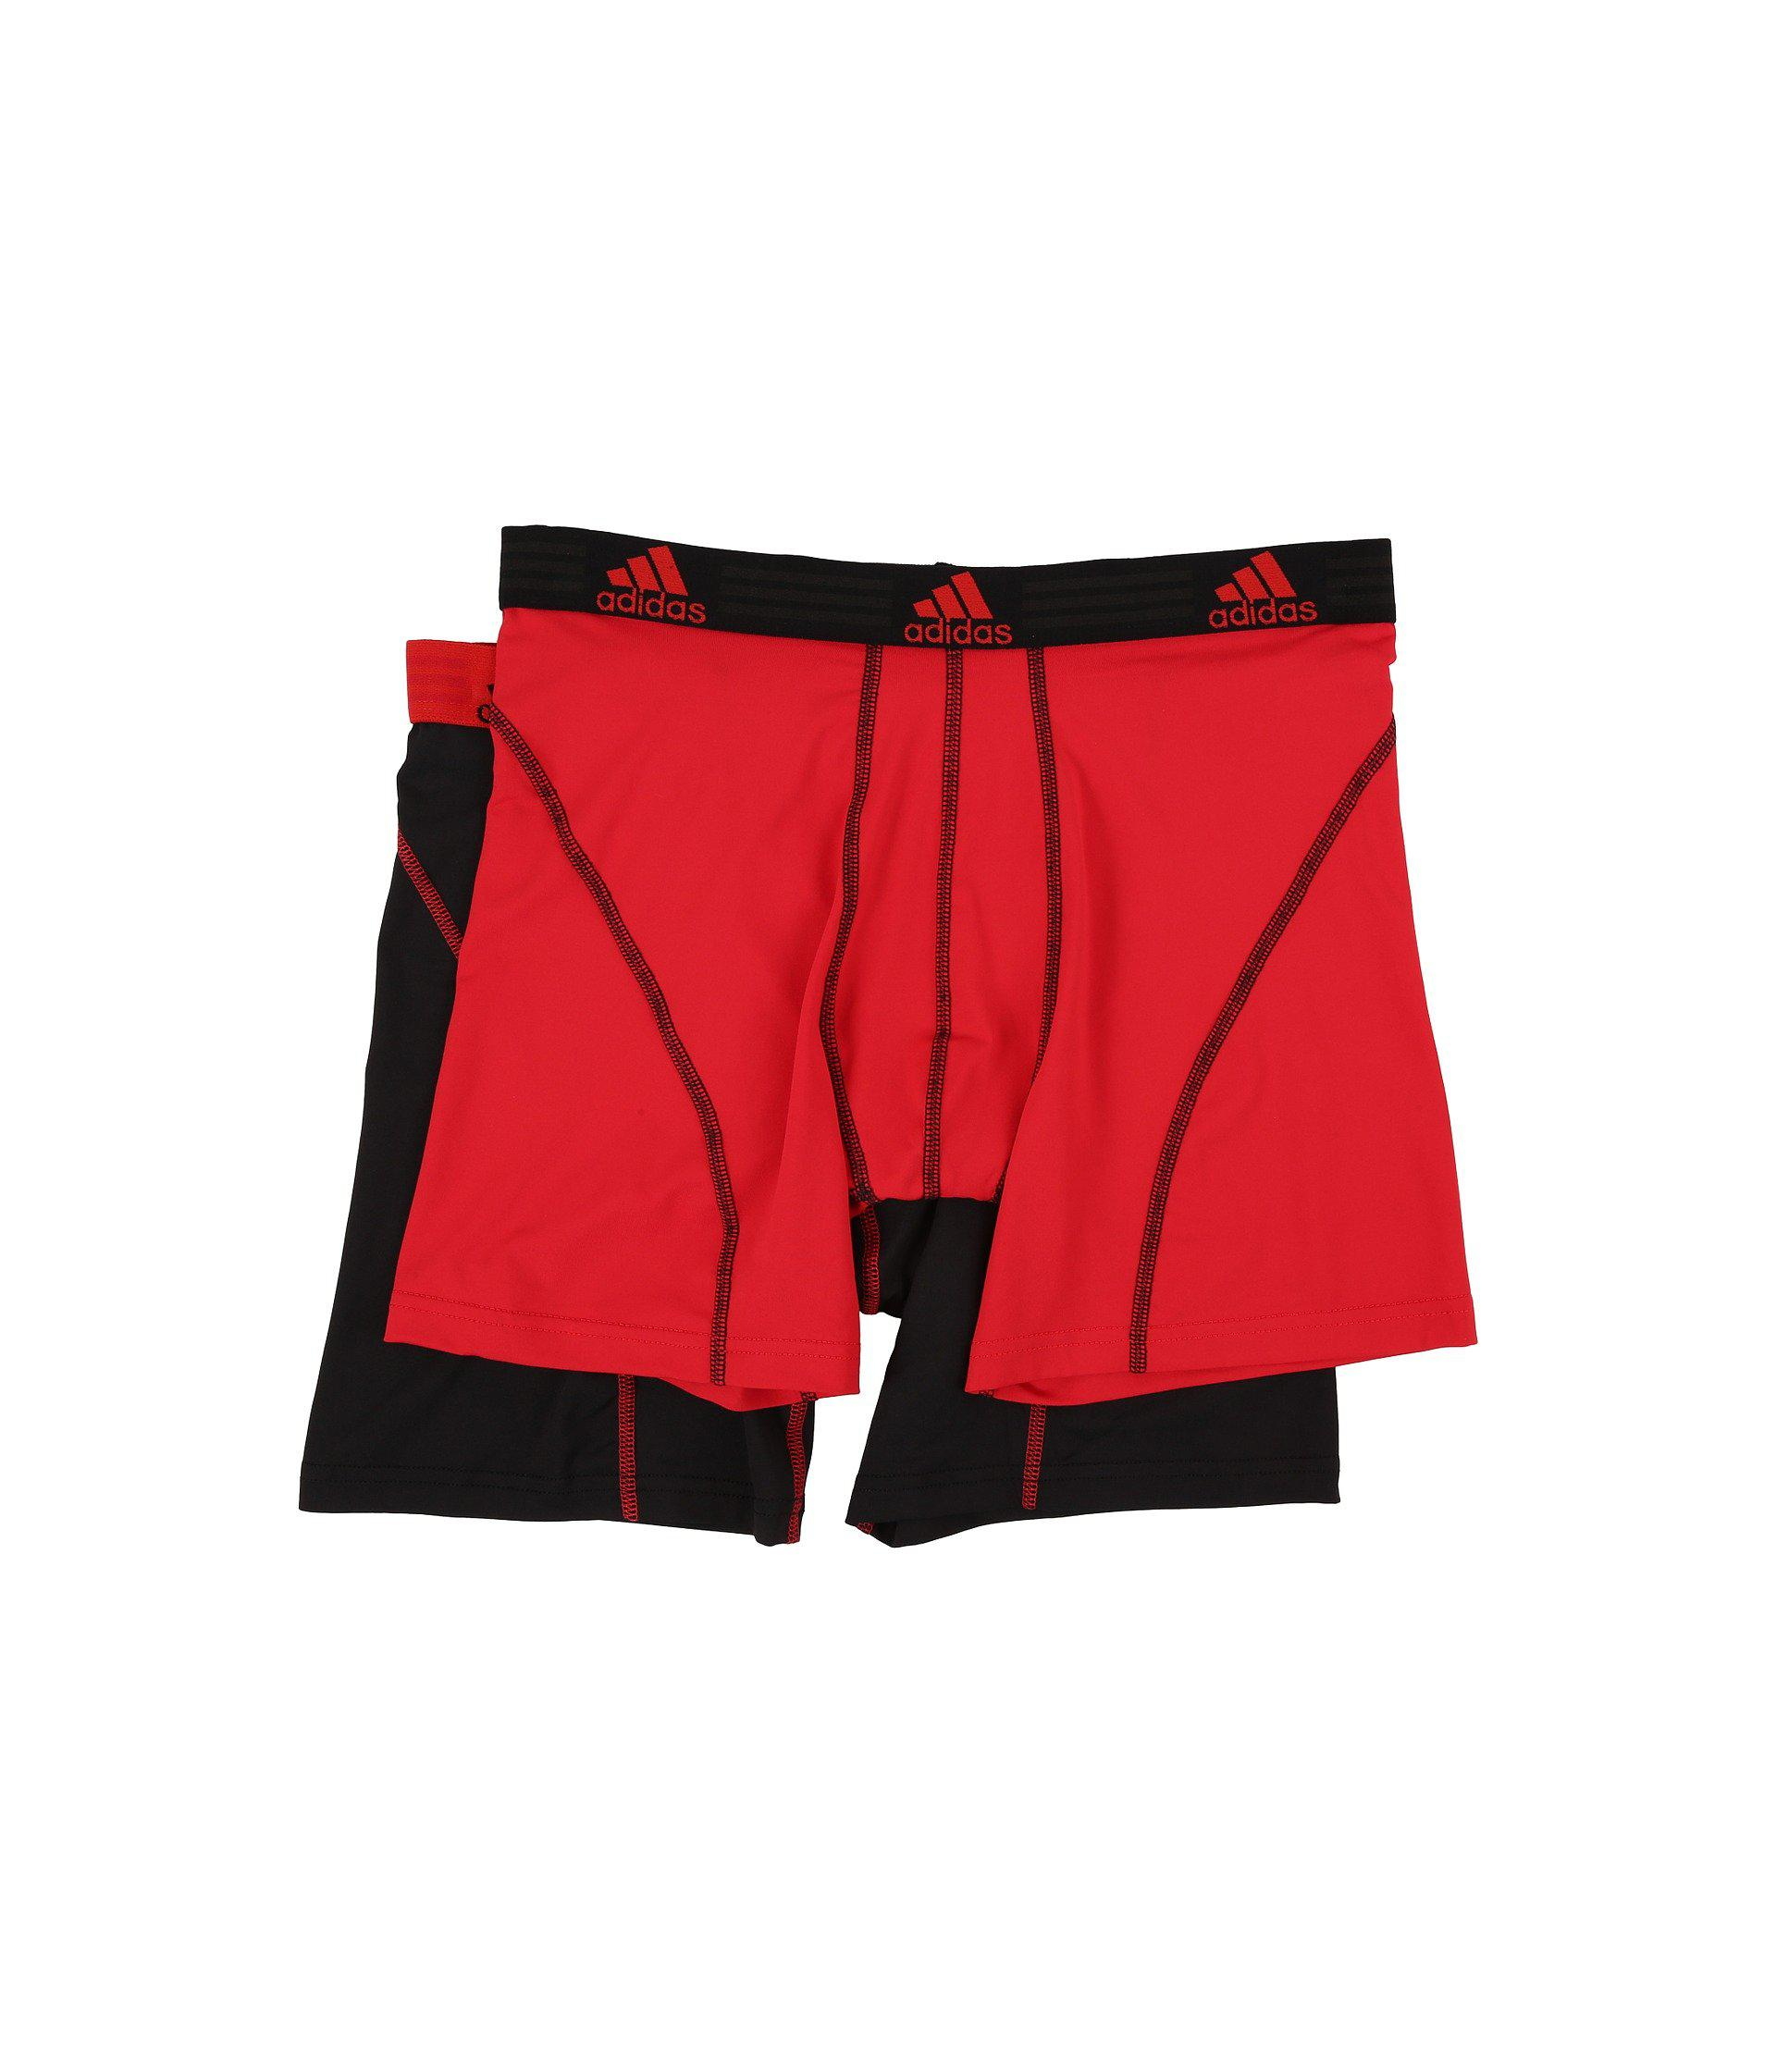 af50d15e0c6e Adidas - Red Sport Performance Climalite 2-pack Boxer Brief (black black .  View fullscreen